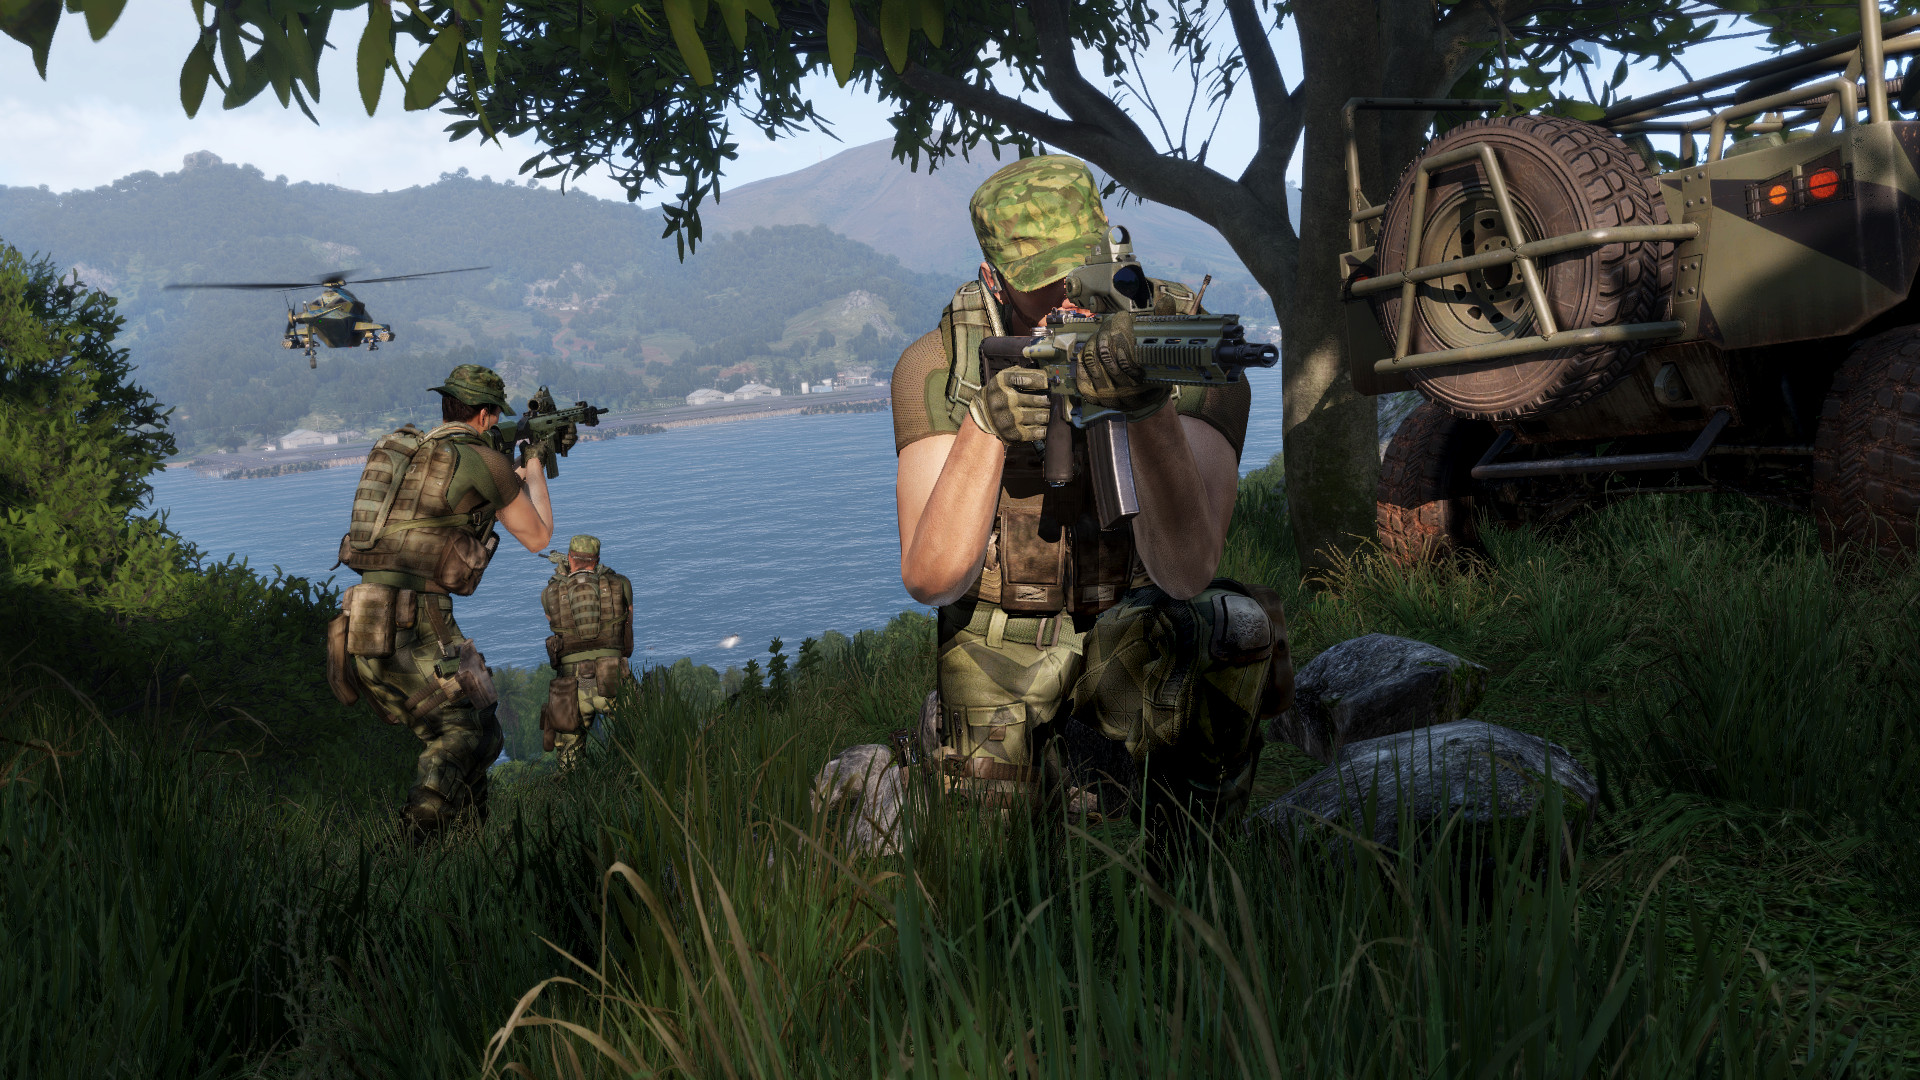 arma3_apex_screenshot_02.jpg